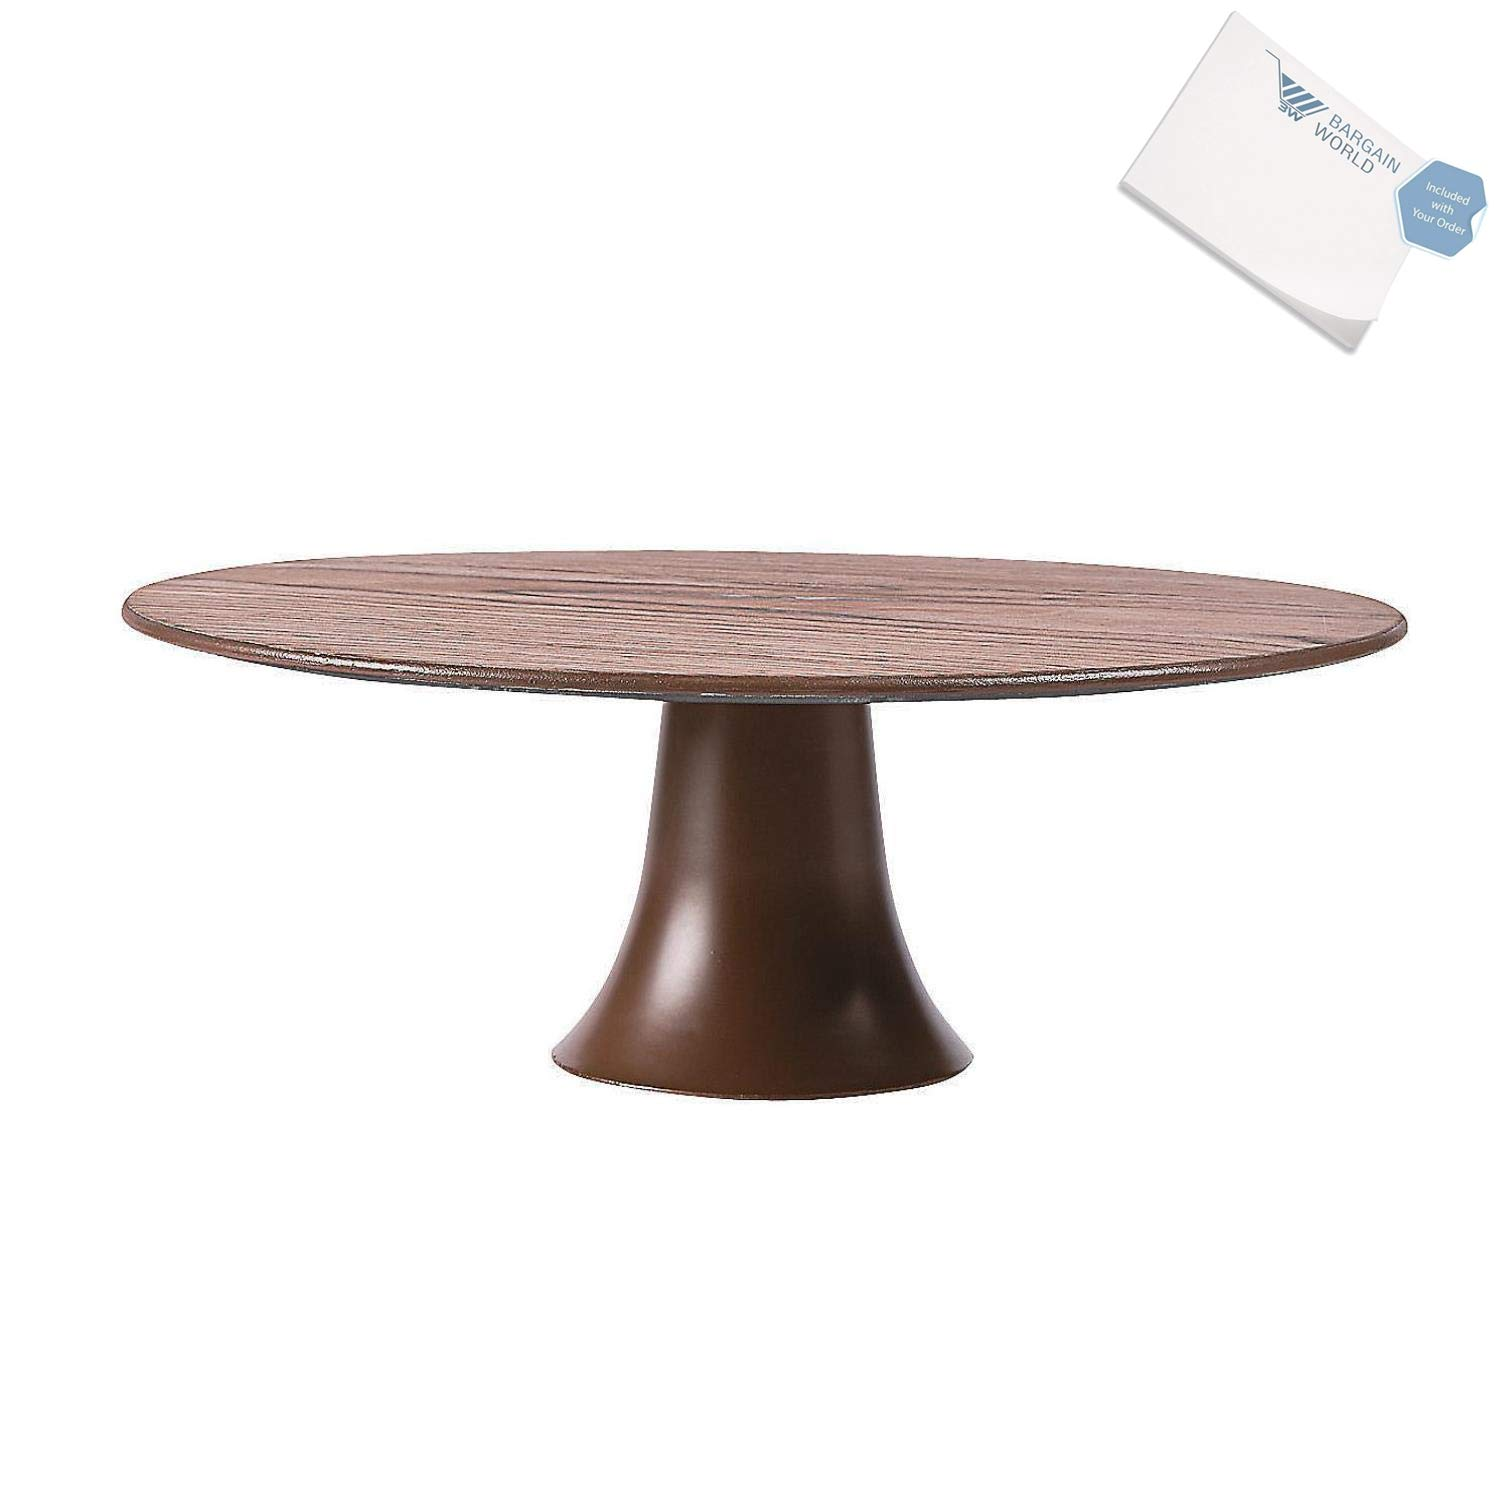 Bargain World Wood Pattern Cake Stand (With Sticky Notes)